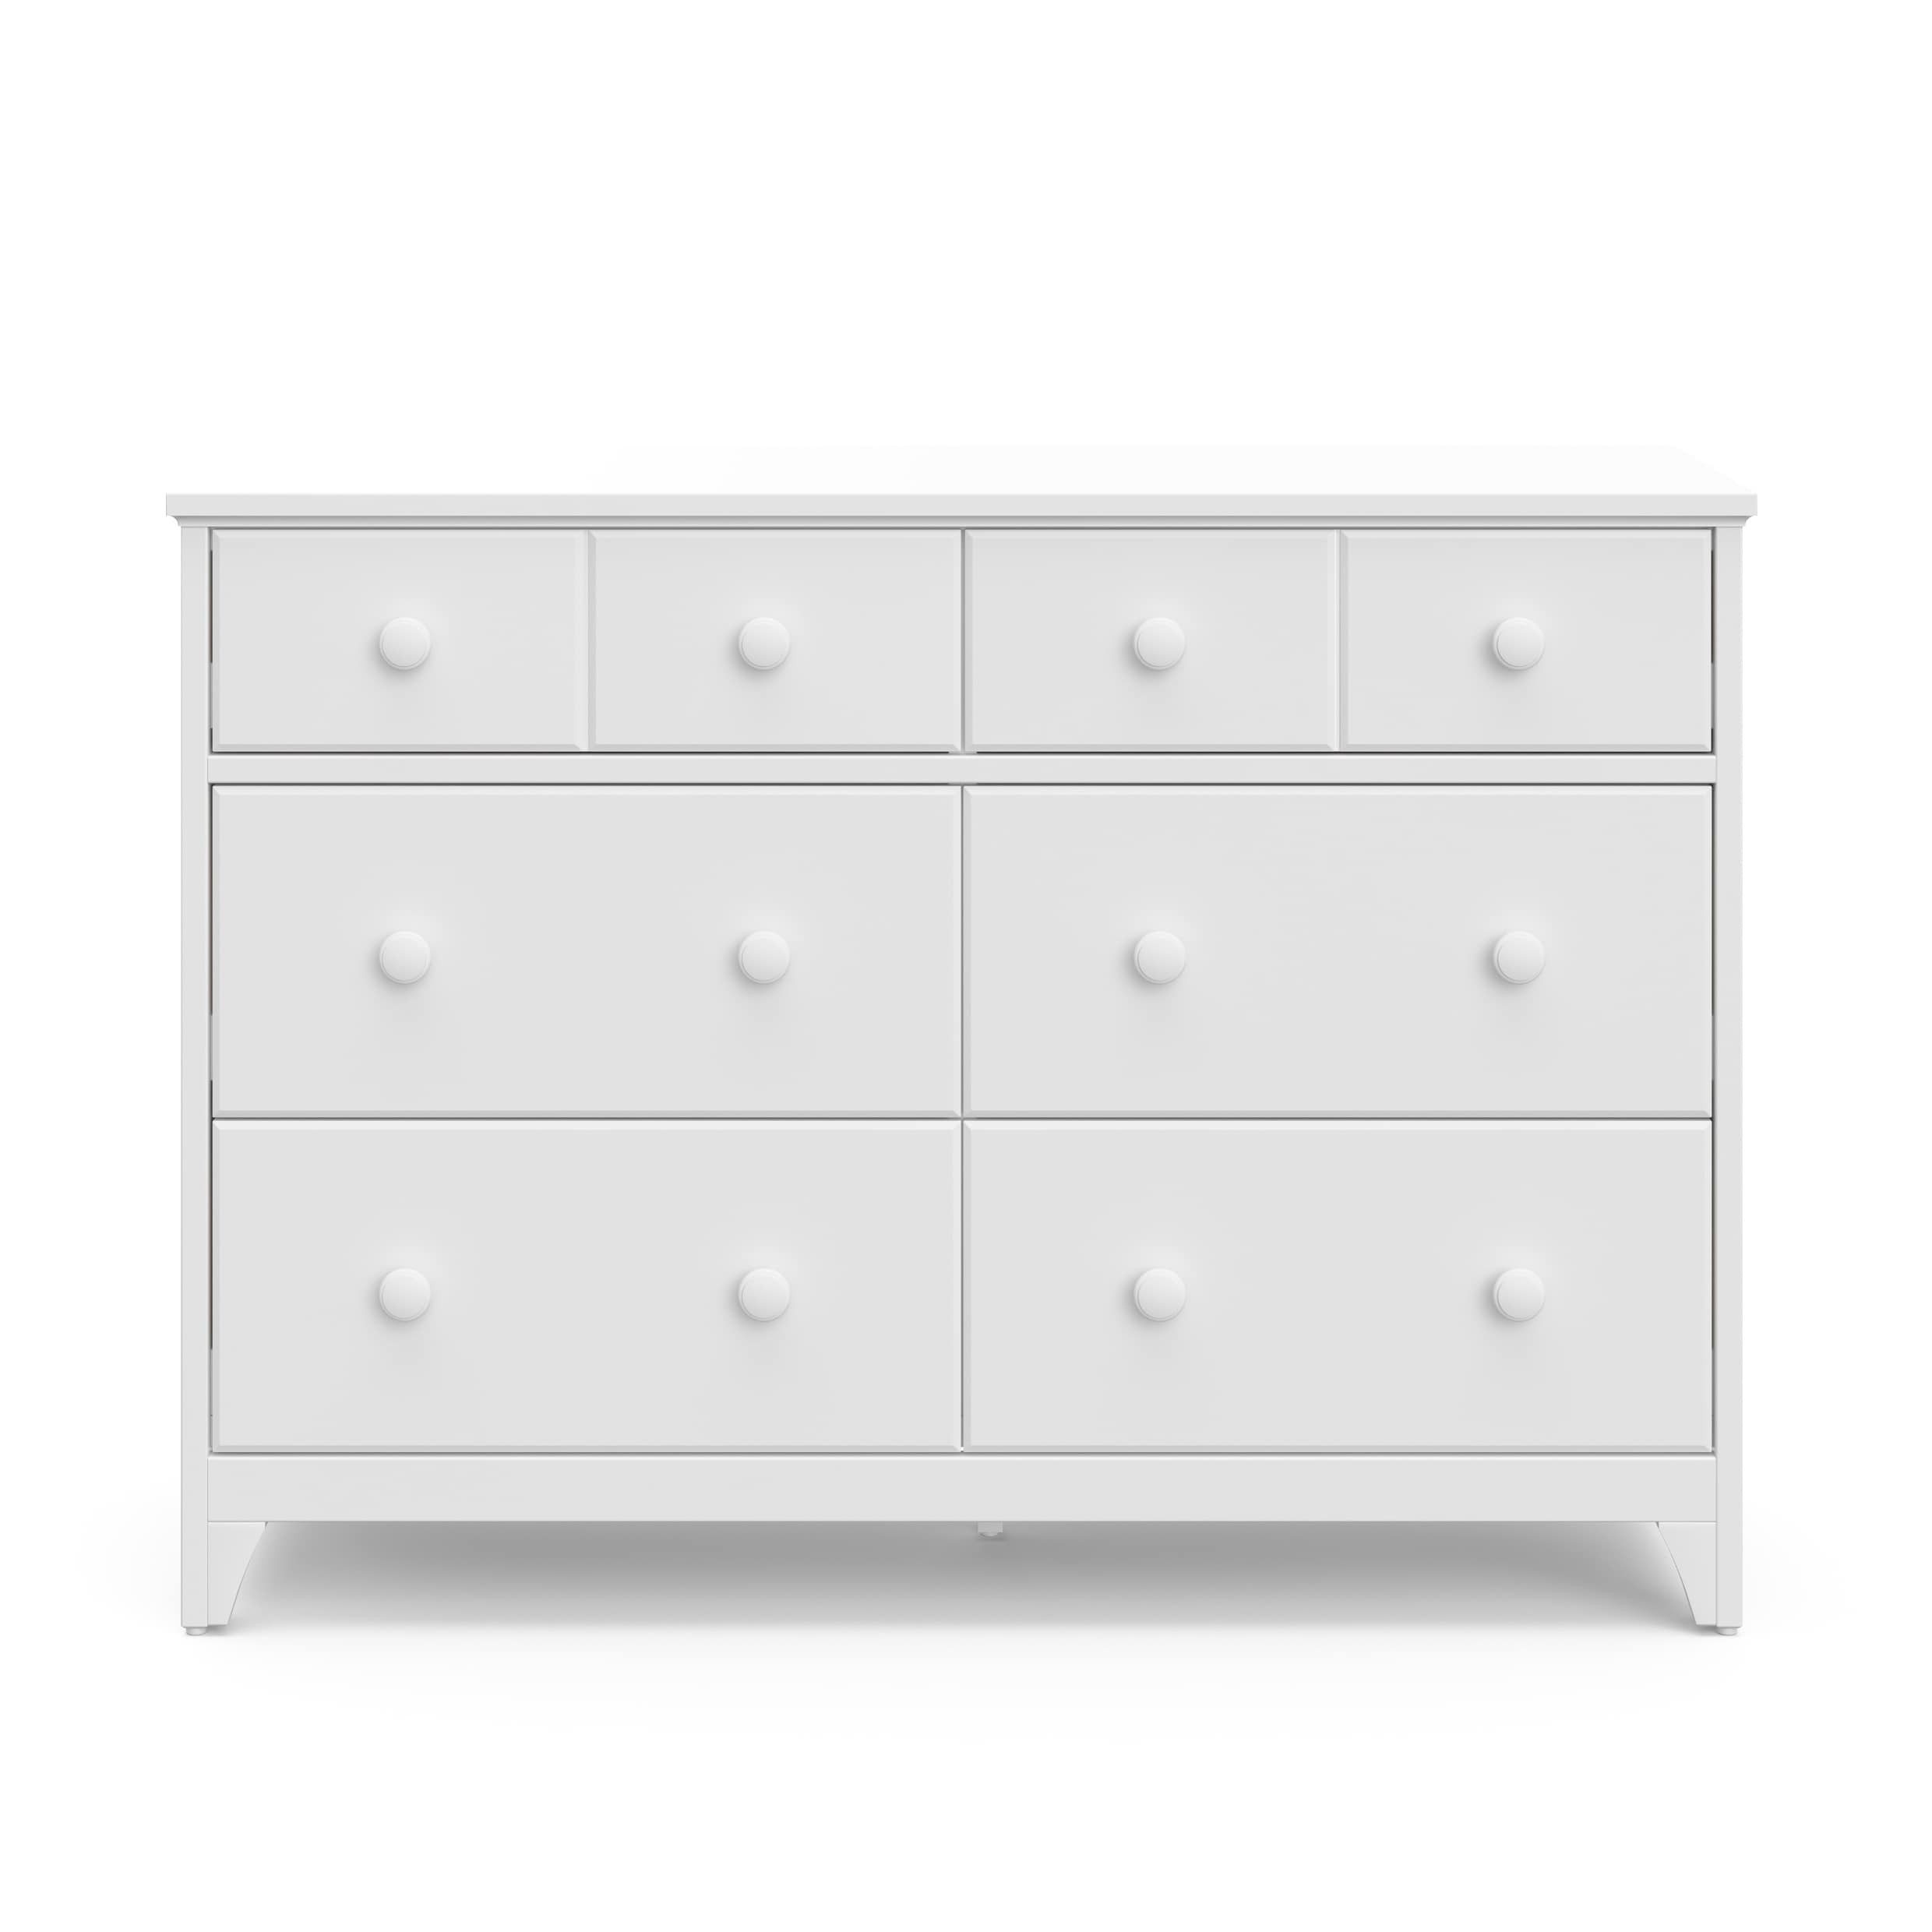 Shop For Carson Carrington Vannevad 6 Drawer Wooden Double Dresser Get Free Delivery On Everything At Overstock Your Online Furniture Shop Get 5 In Rewards With Club O 30601429